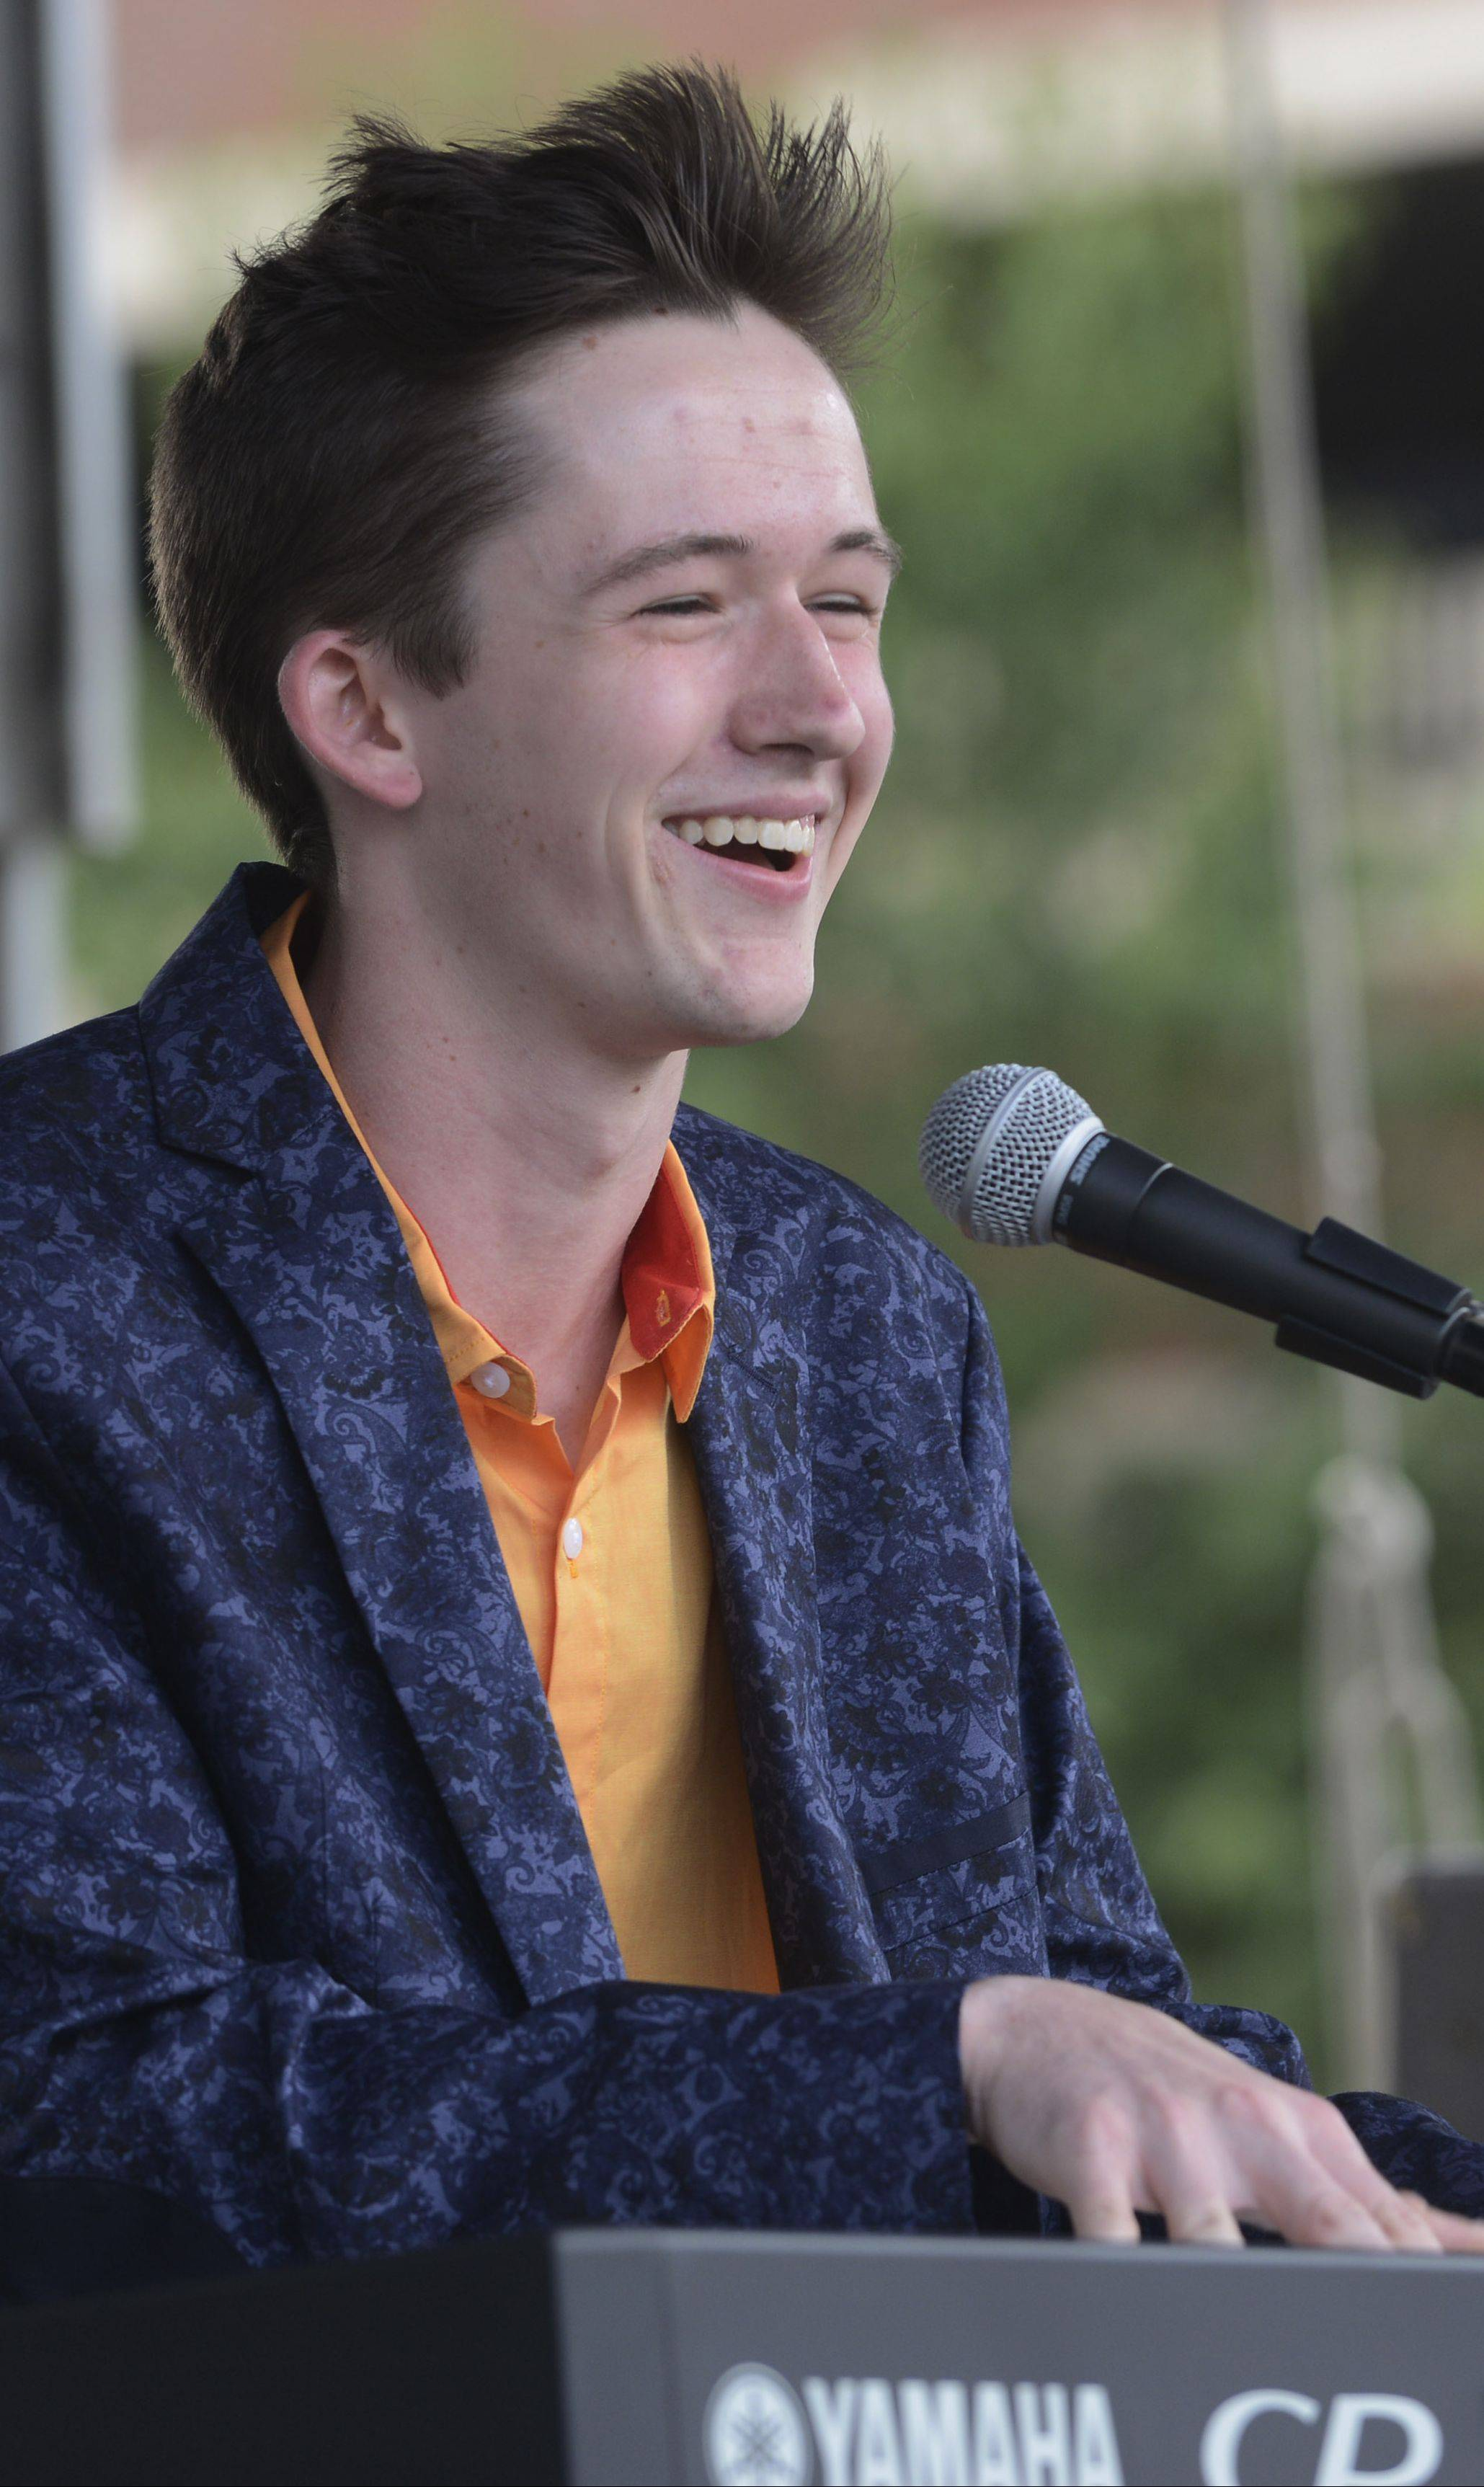 Riley Mangan, a top 10 finalist of Suburban Chicago's Got Talent, is set to perform at Randhurst Village before a performance of Maggie Speaks on Aug. 21.